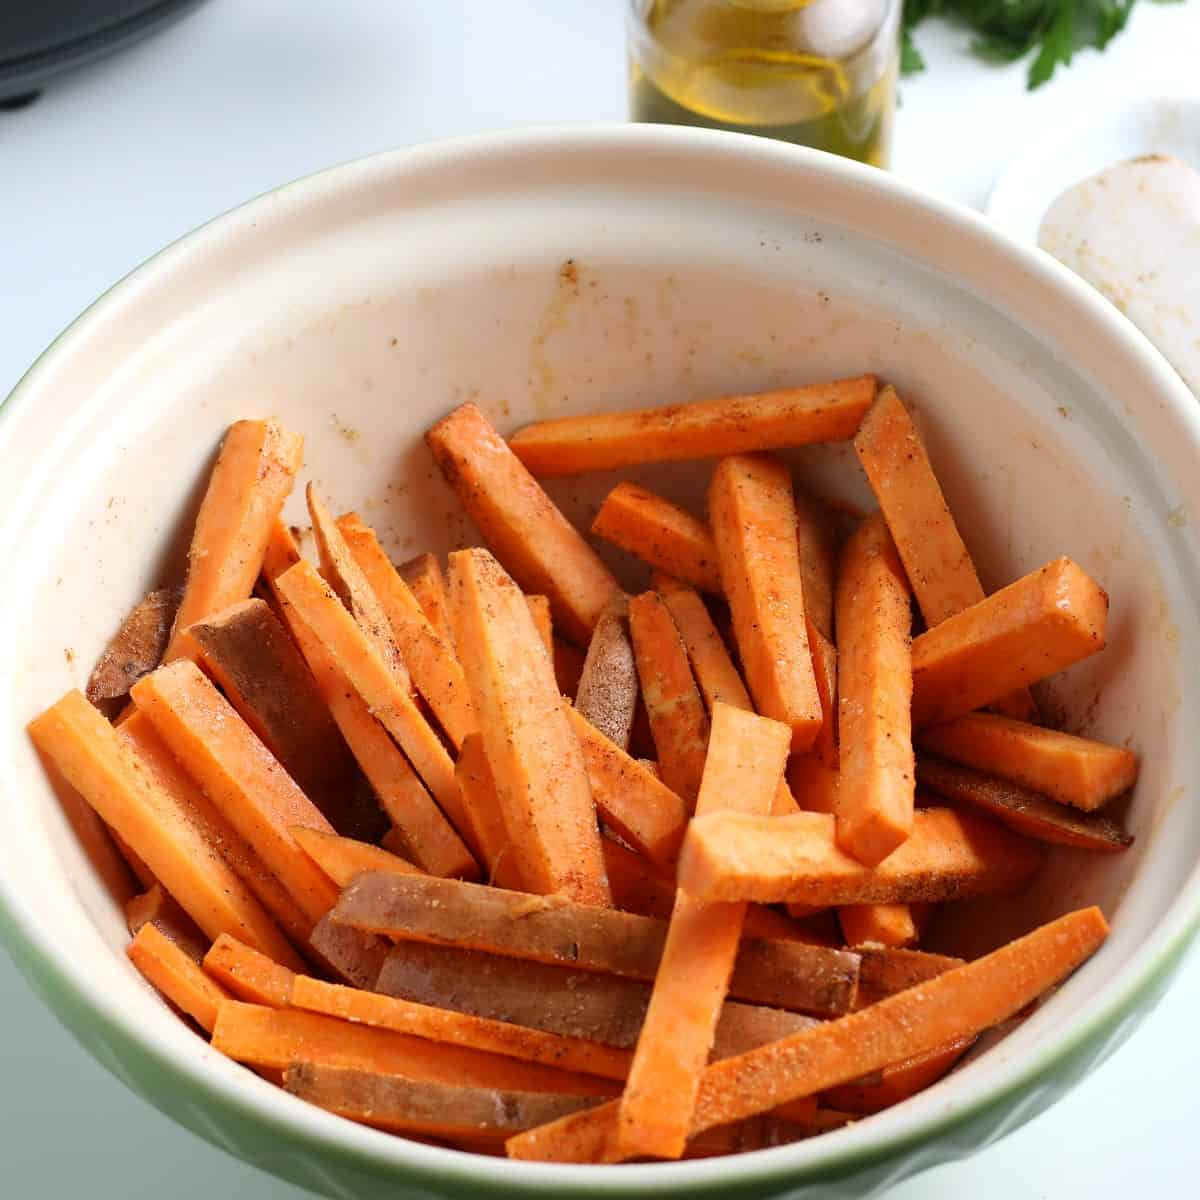 Matchstick veggies in a mixing bowl and tossed with oil and seasonings.